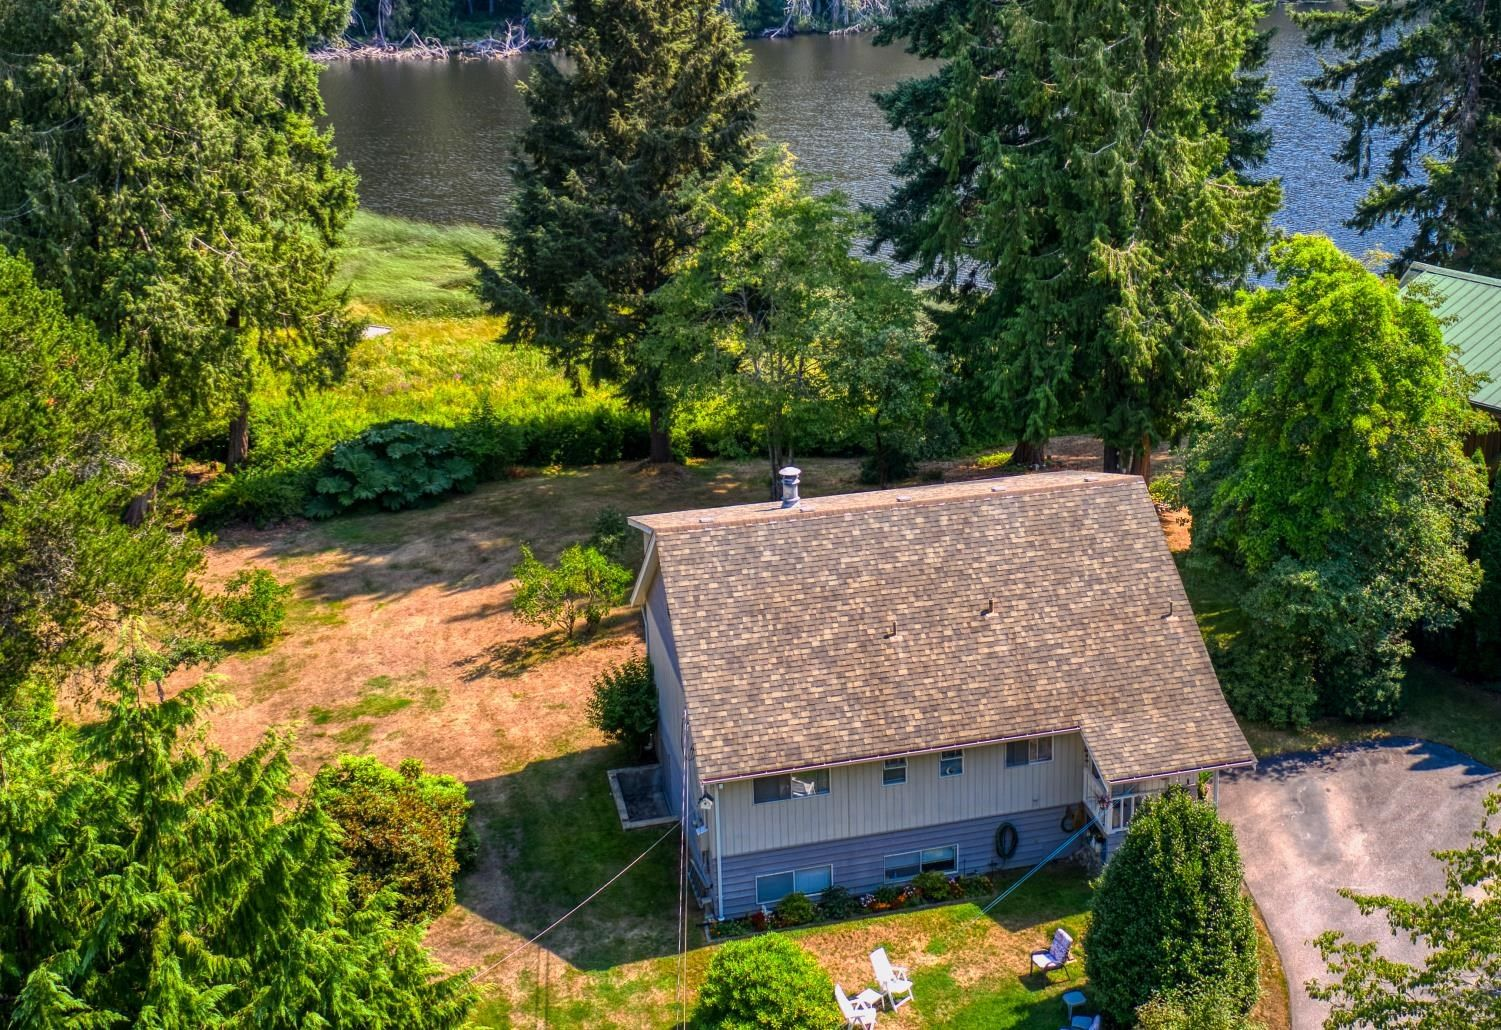 Main Photo: 12770 MAINSAIL Road in Madeira Park: Pender Harbour Egmont House for sale (Sunshine Coast)  : MLS®# R2610413